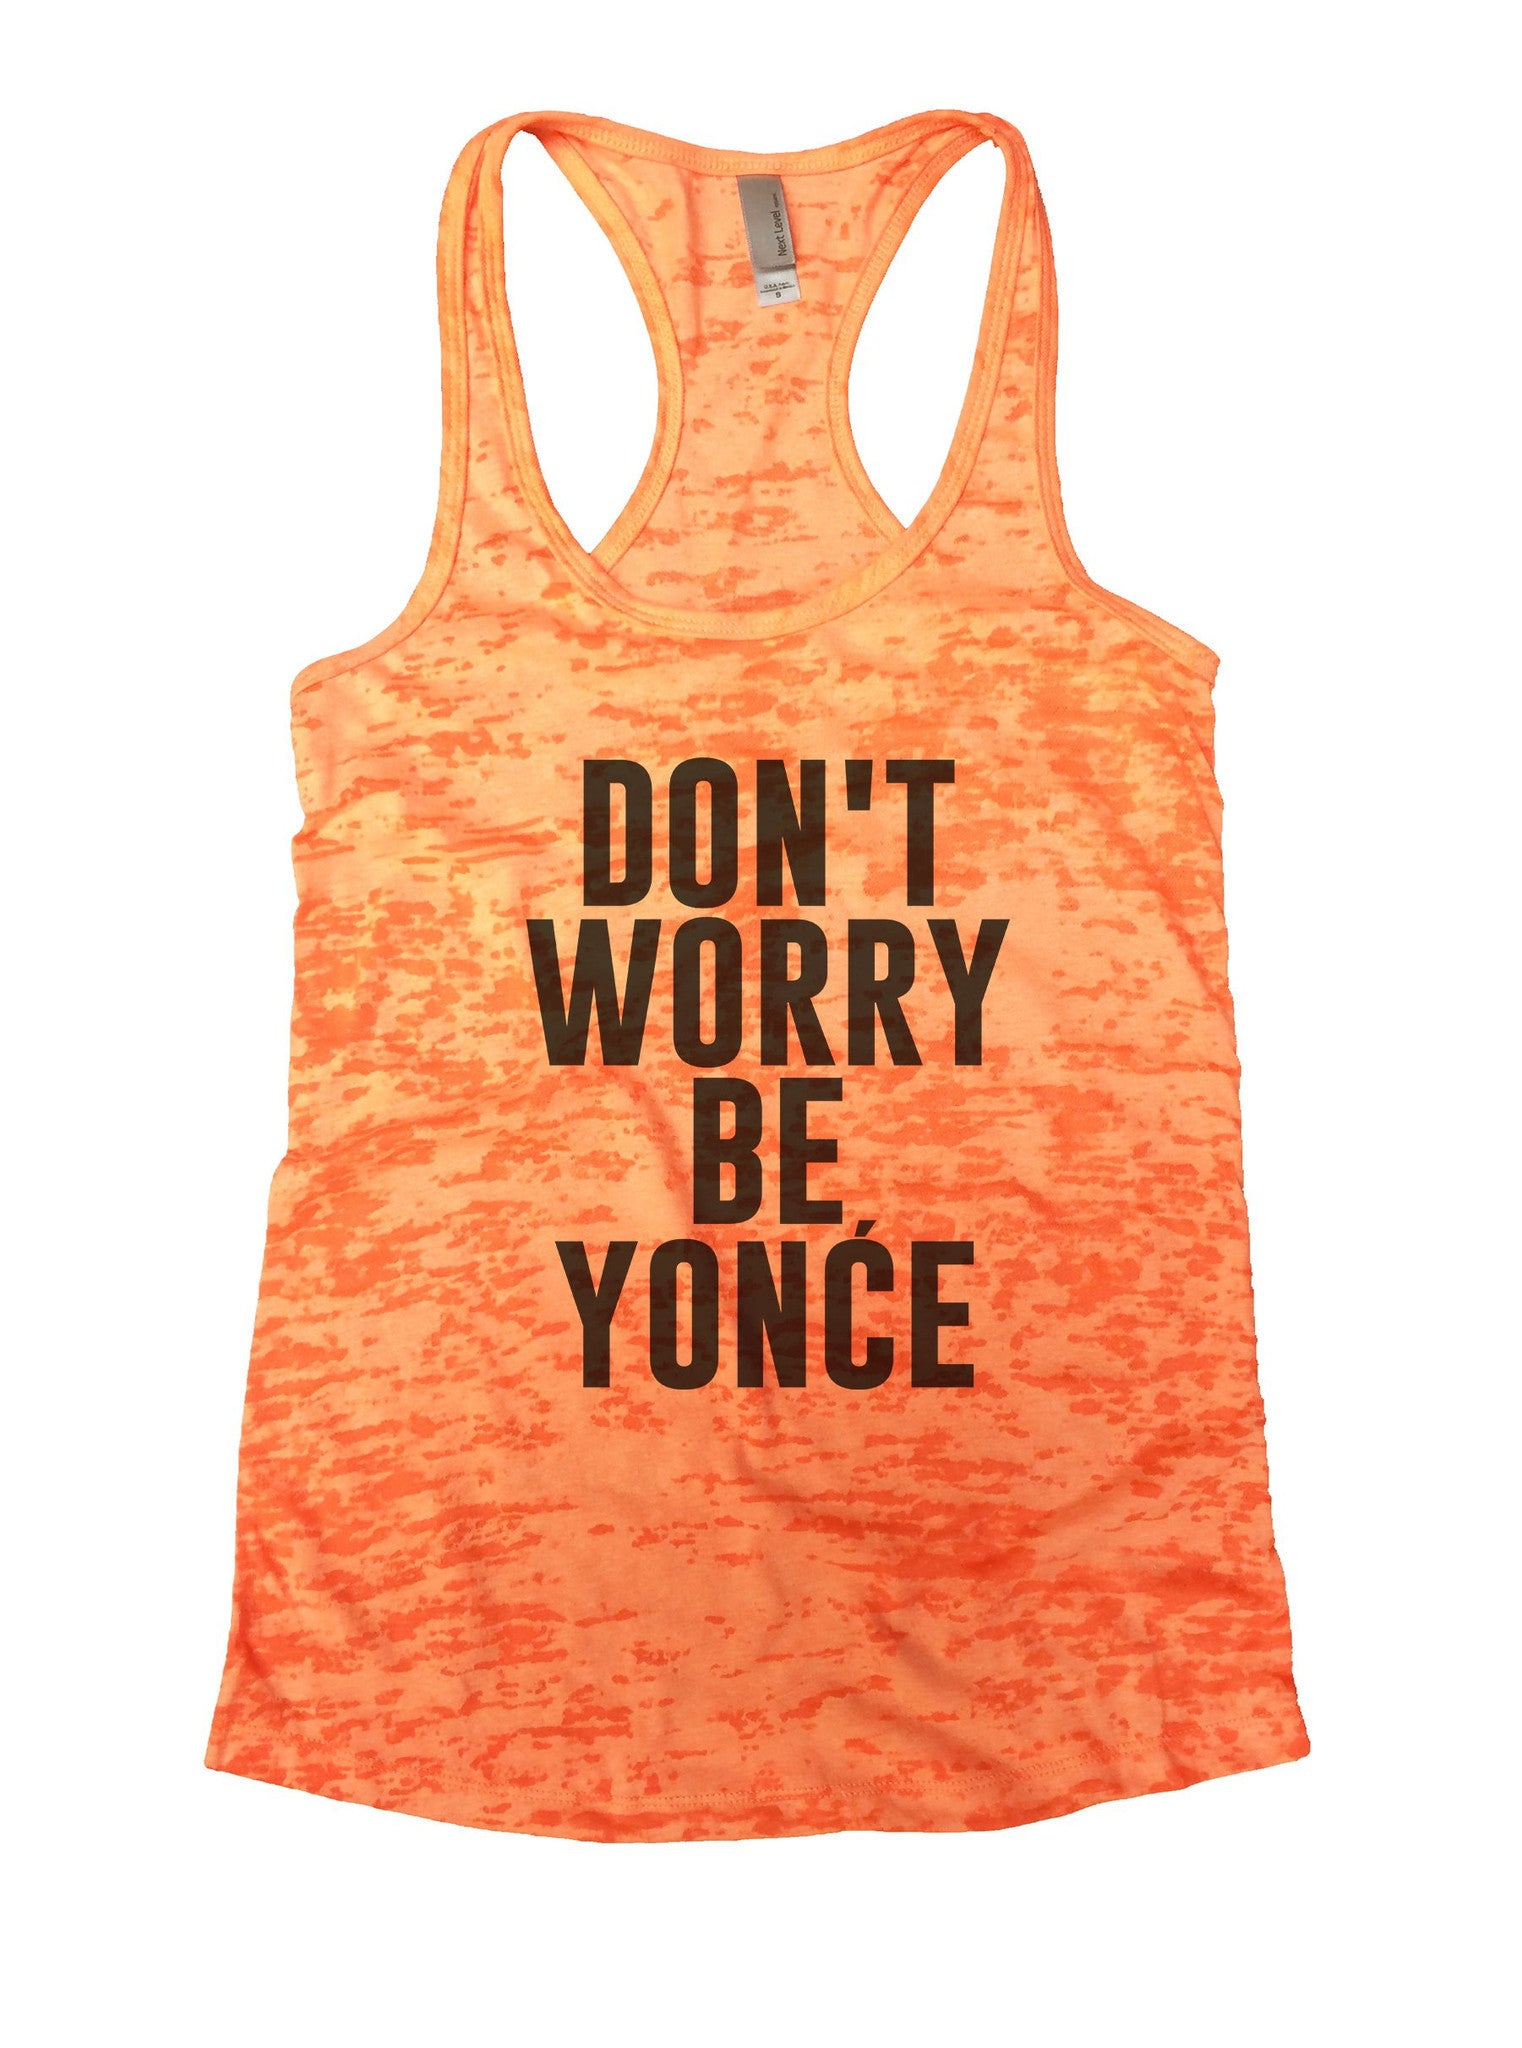 Don't Worry Be Yonce Burnout Tank Top By BurnoutTankTops.com - 934 - Funny Shirts Tank Tops Burnouts and Triblends  - 4